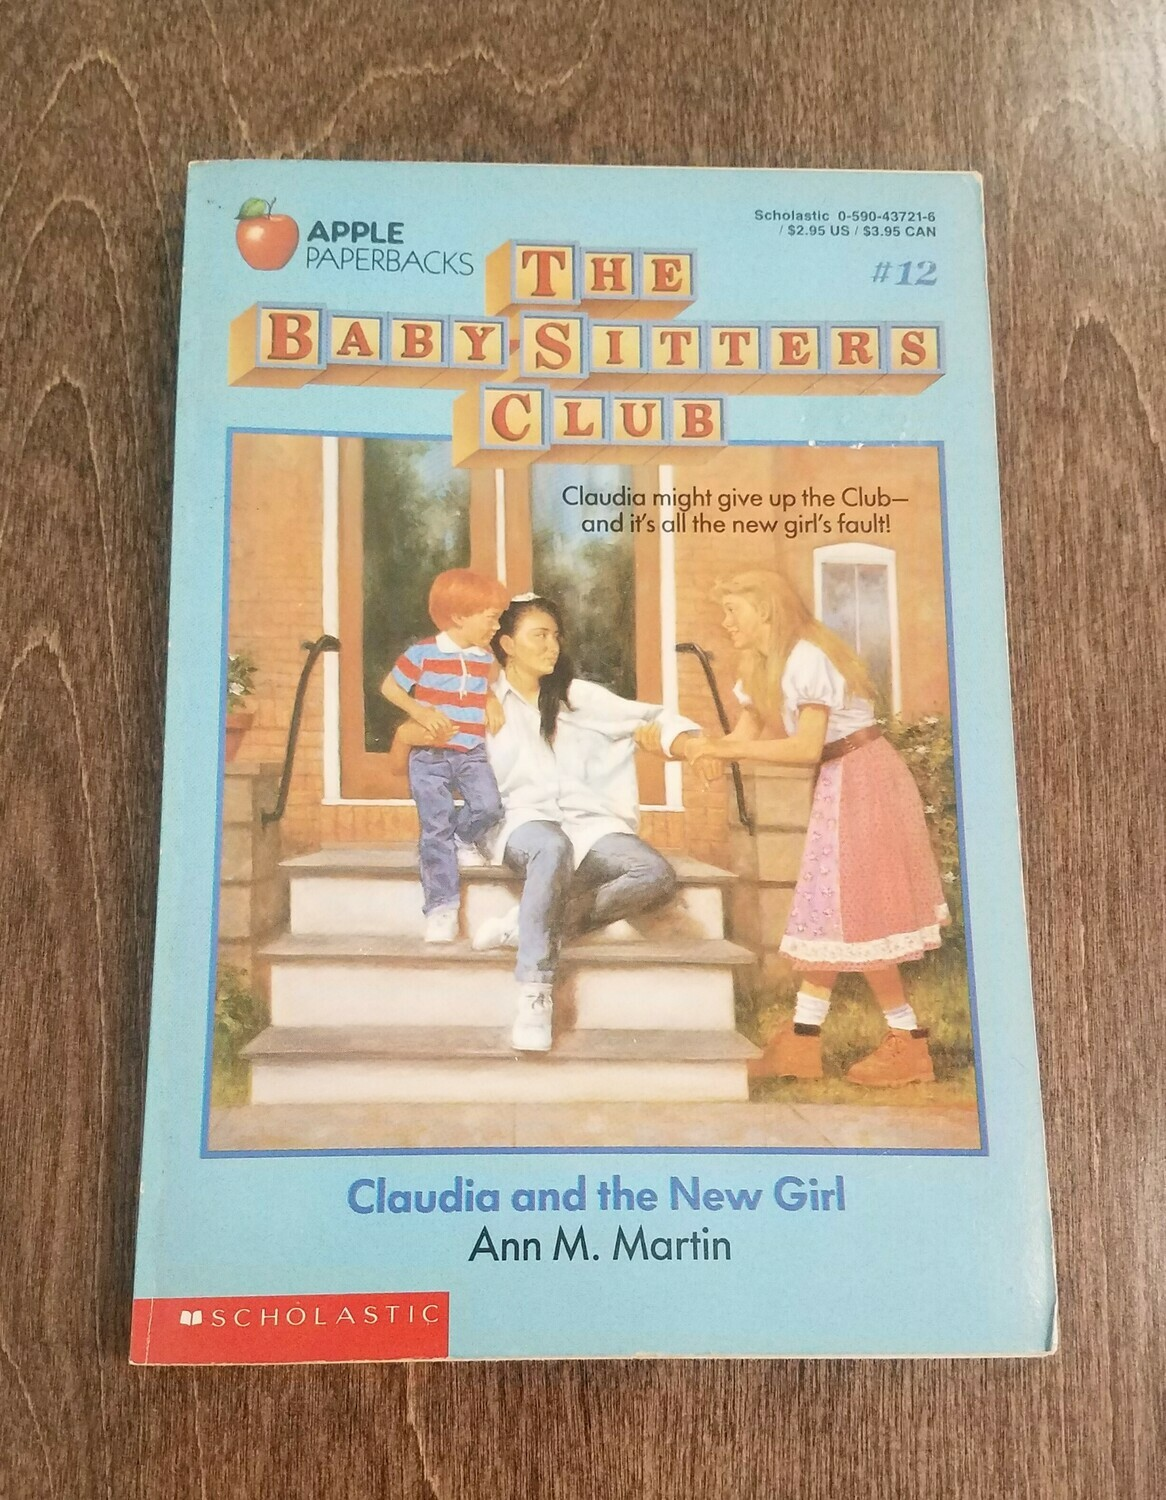 The Babysitters Club: Claudia and the New Girl by Ann M. Martin